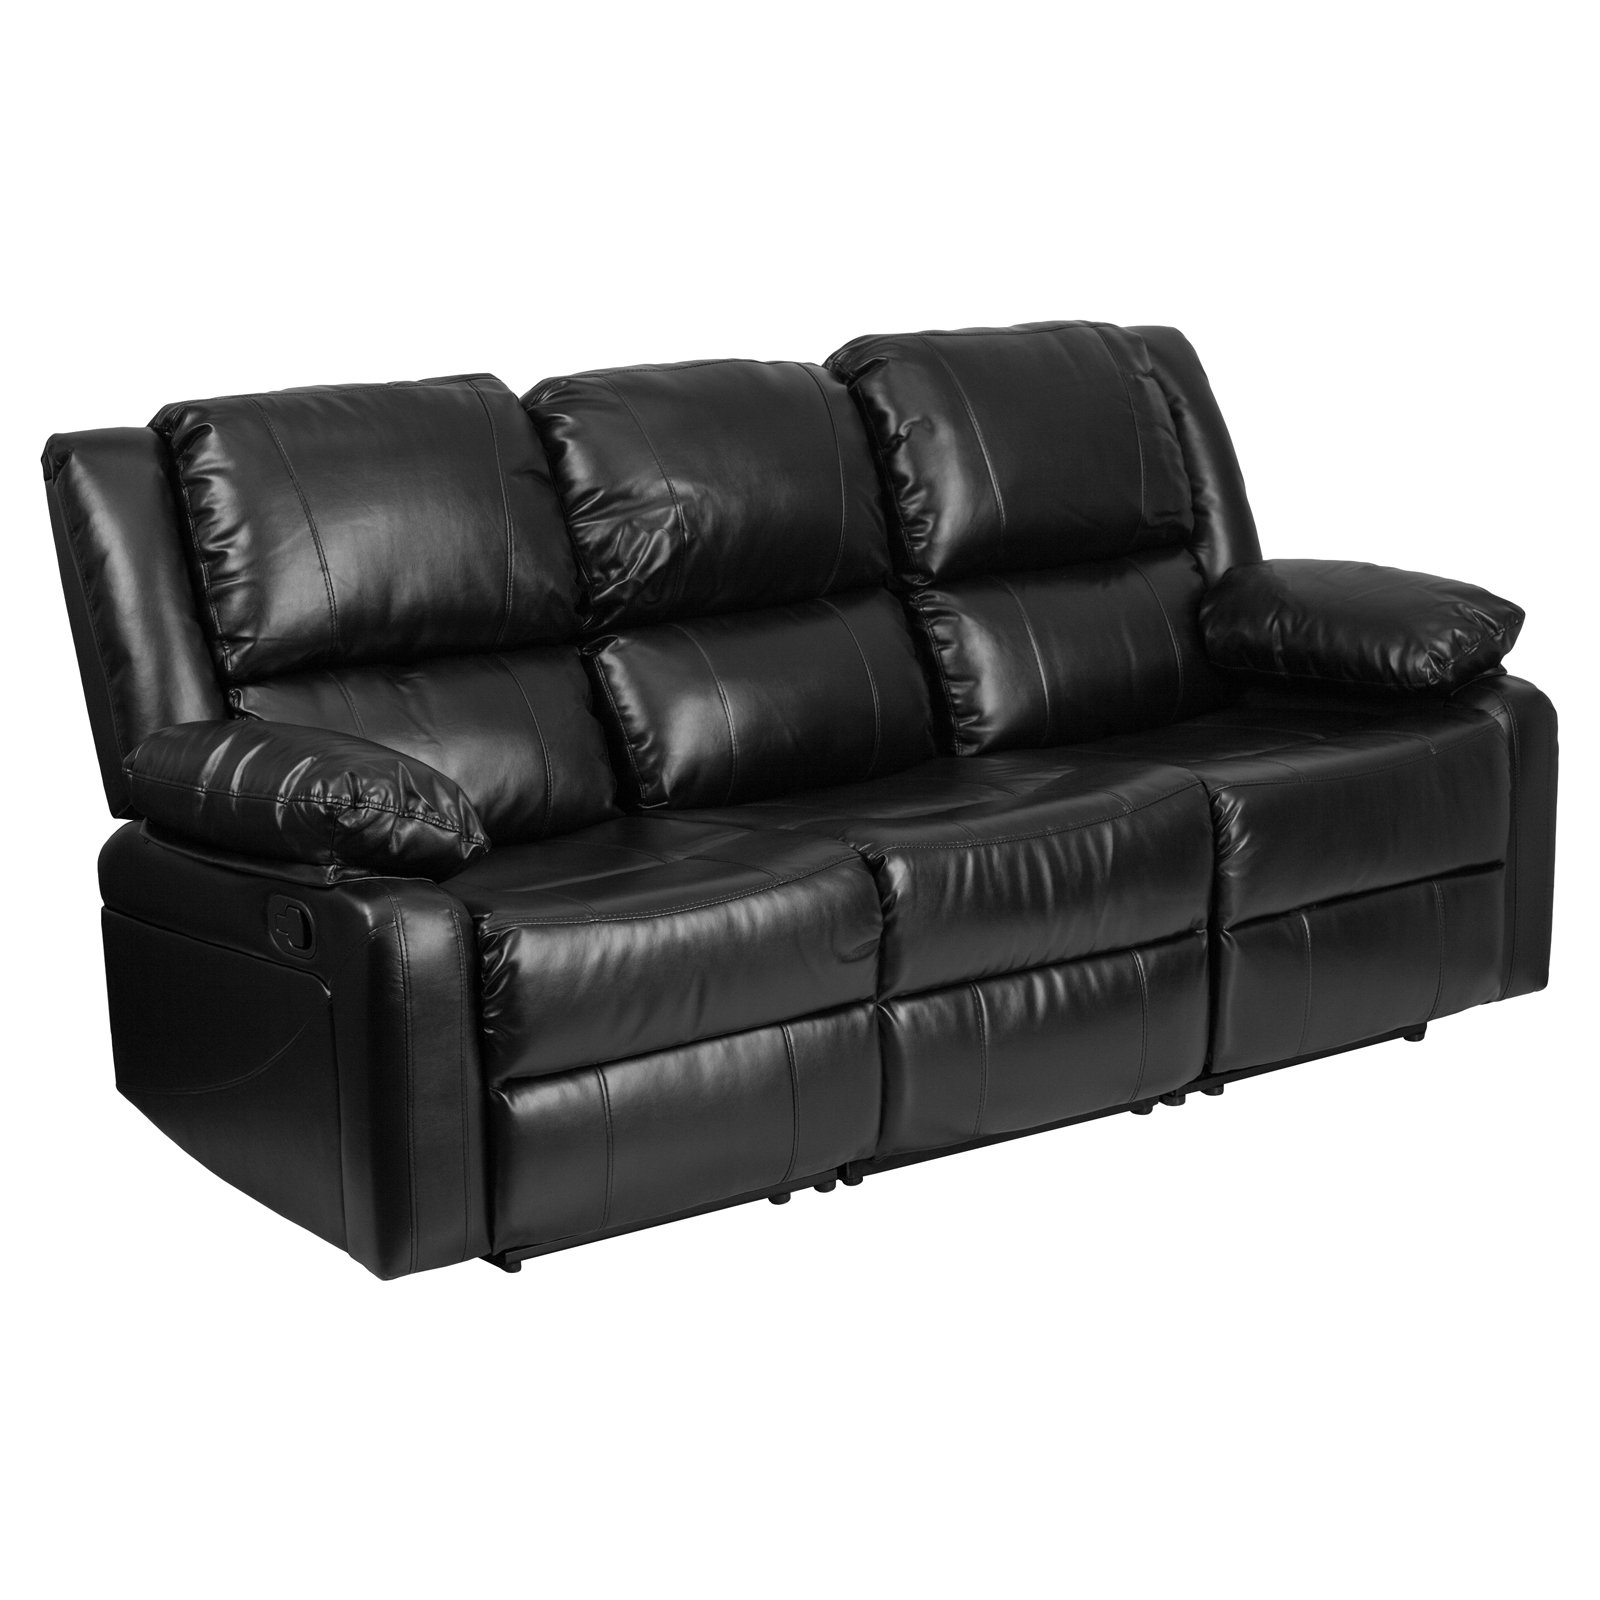 Flash Furniture Harmony Series Black Leather Sofa with Two Built-In  Recliners - Traveller Location